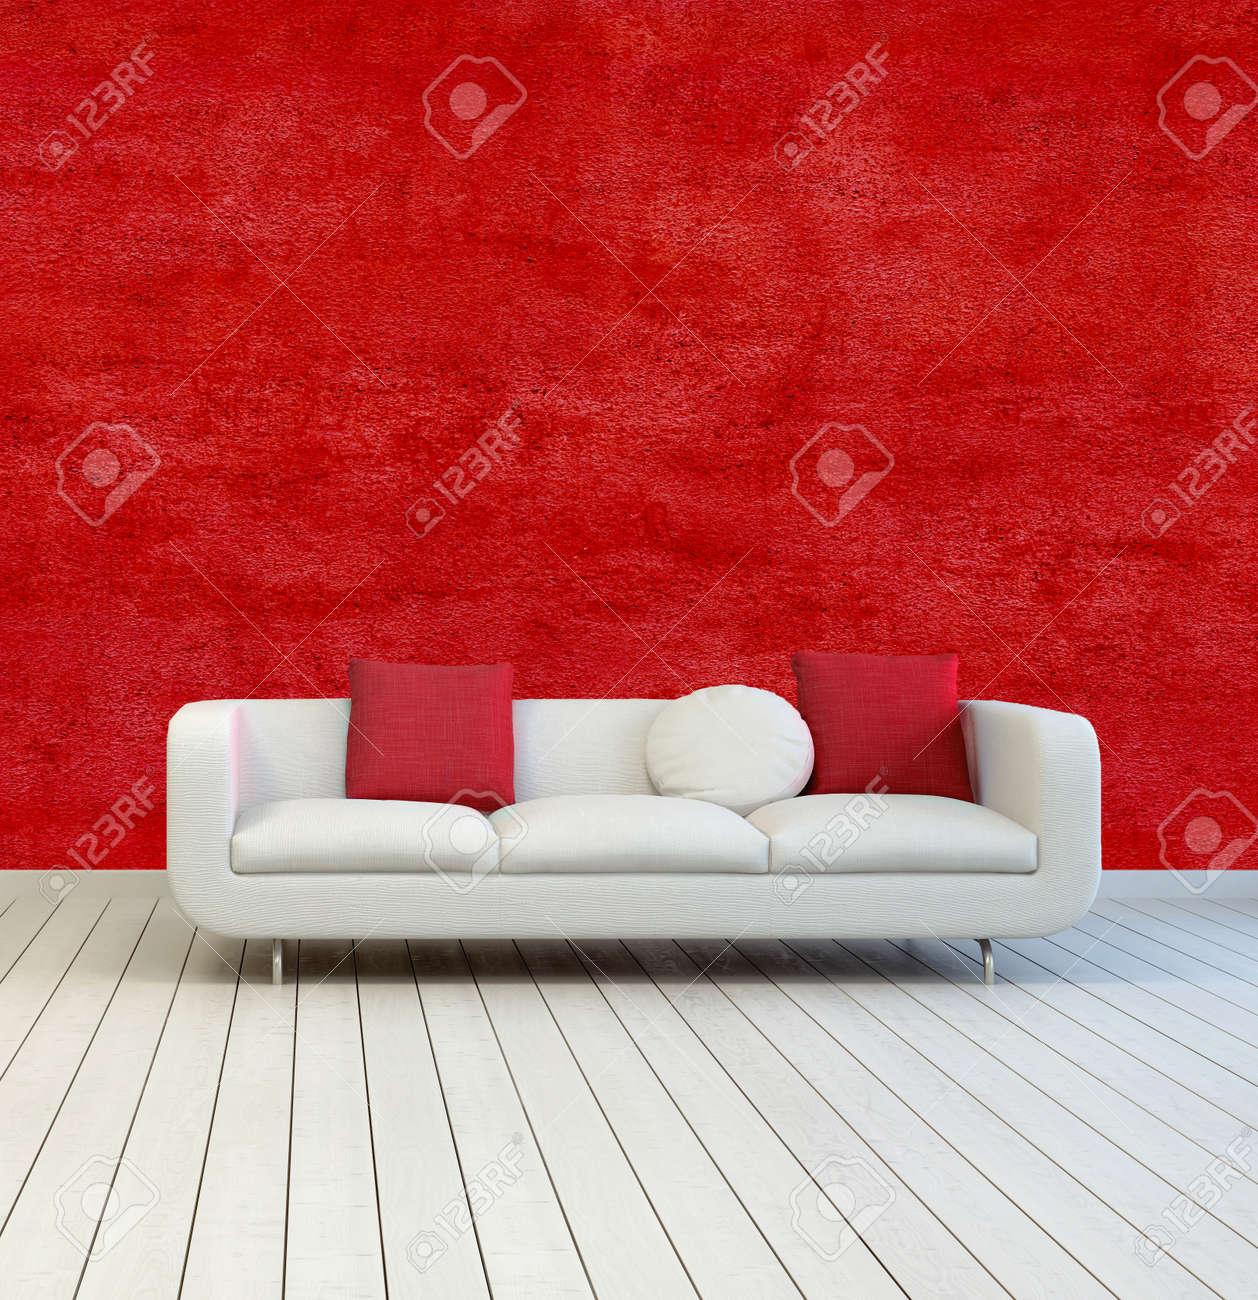 Beau Stock Photo   White Sofa With Red And White Pillows On An Empty Room With  Red Wall Background And Off White Wooden Floor.